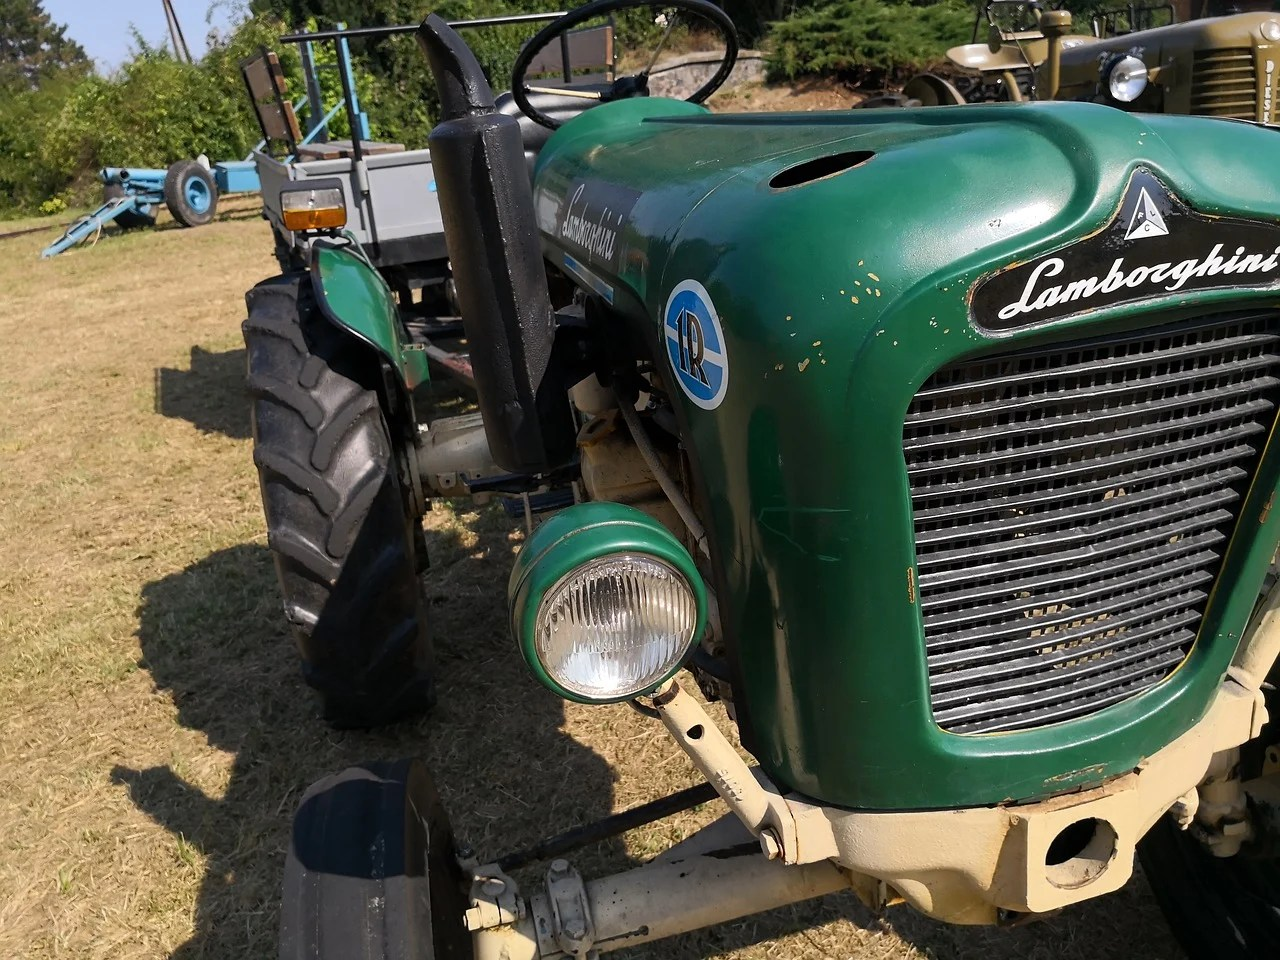 Due to the ongoing novel coronavirus pandemic, 2020 was a challenging year for small business owners. Which Entrepreneur Made Tractors Before Entering The Sports Car Business